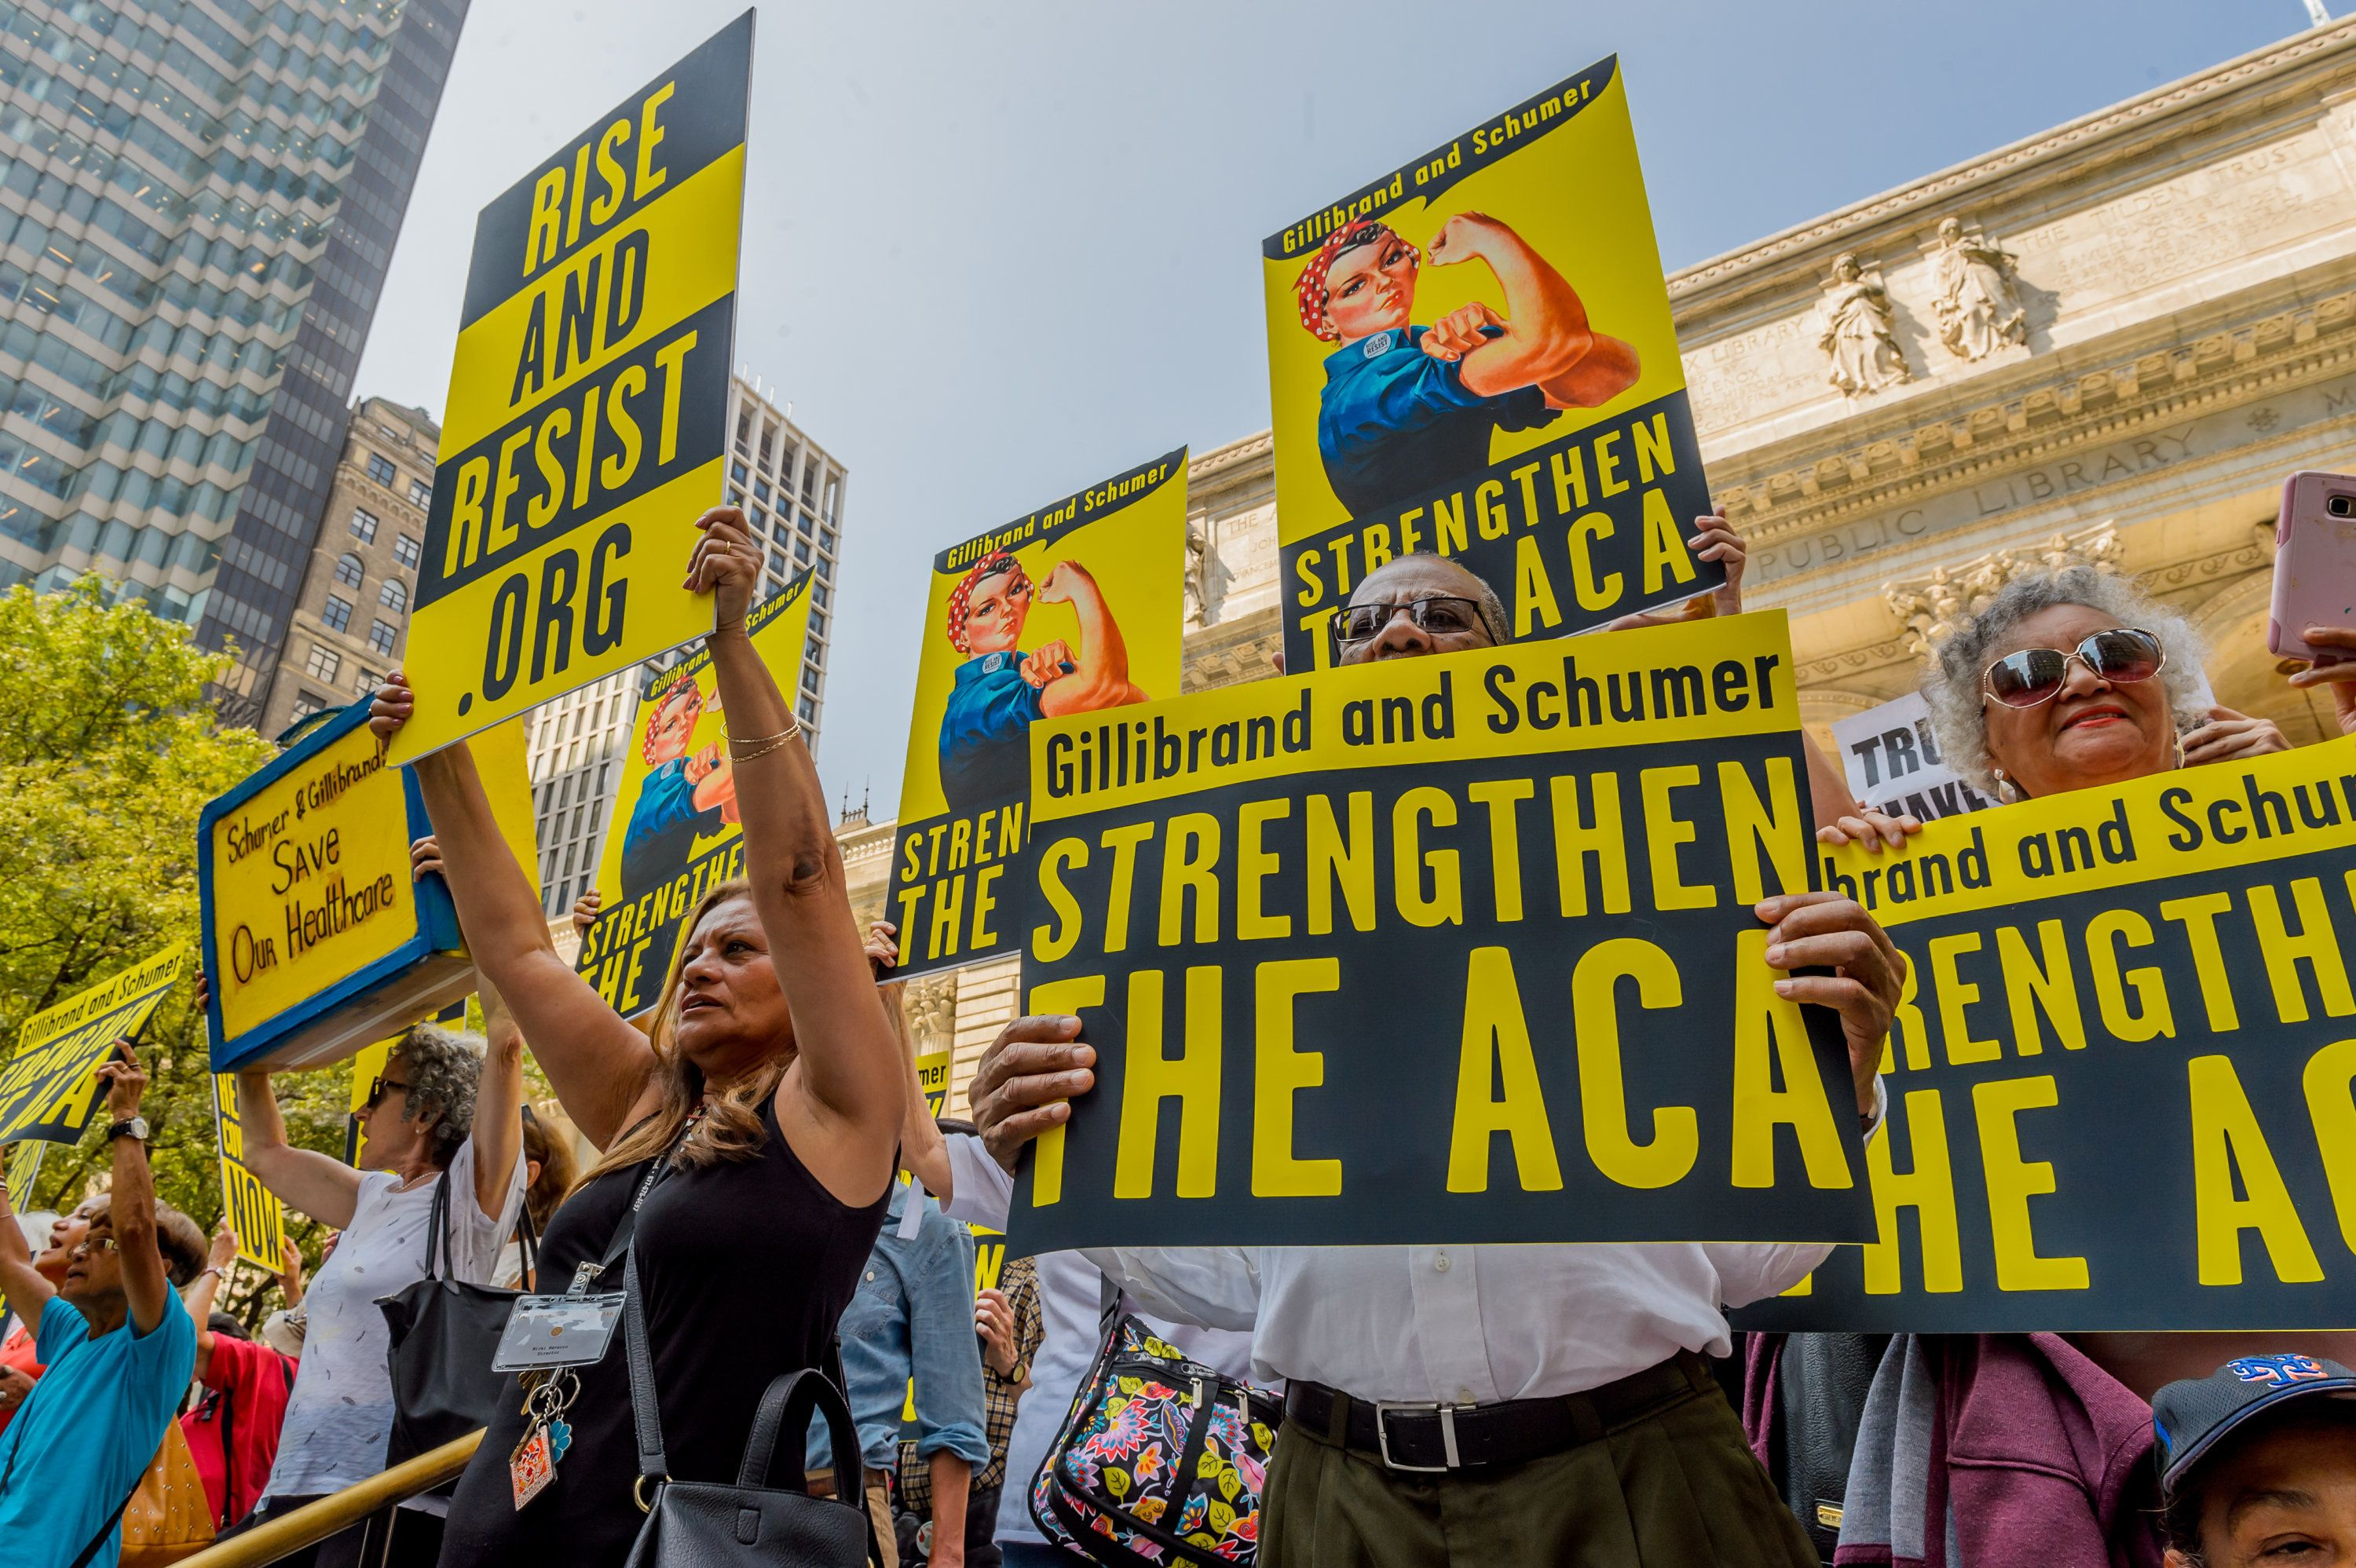 Activists calling for the strengthening of the Affordable Care Act marched in New York City on September 5, 2017.